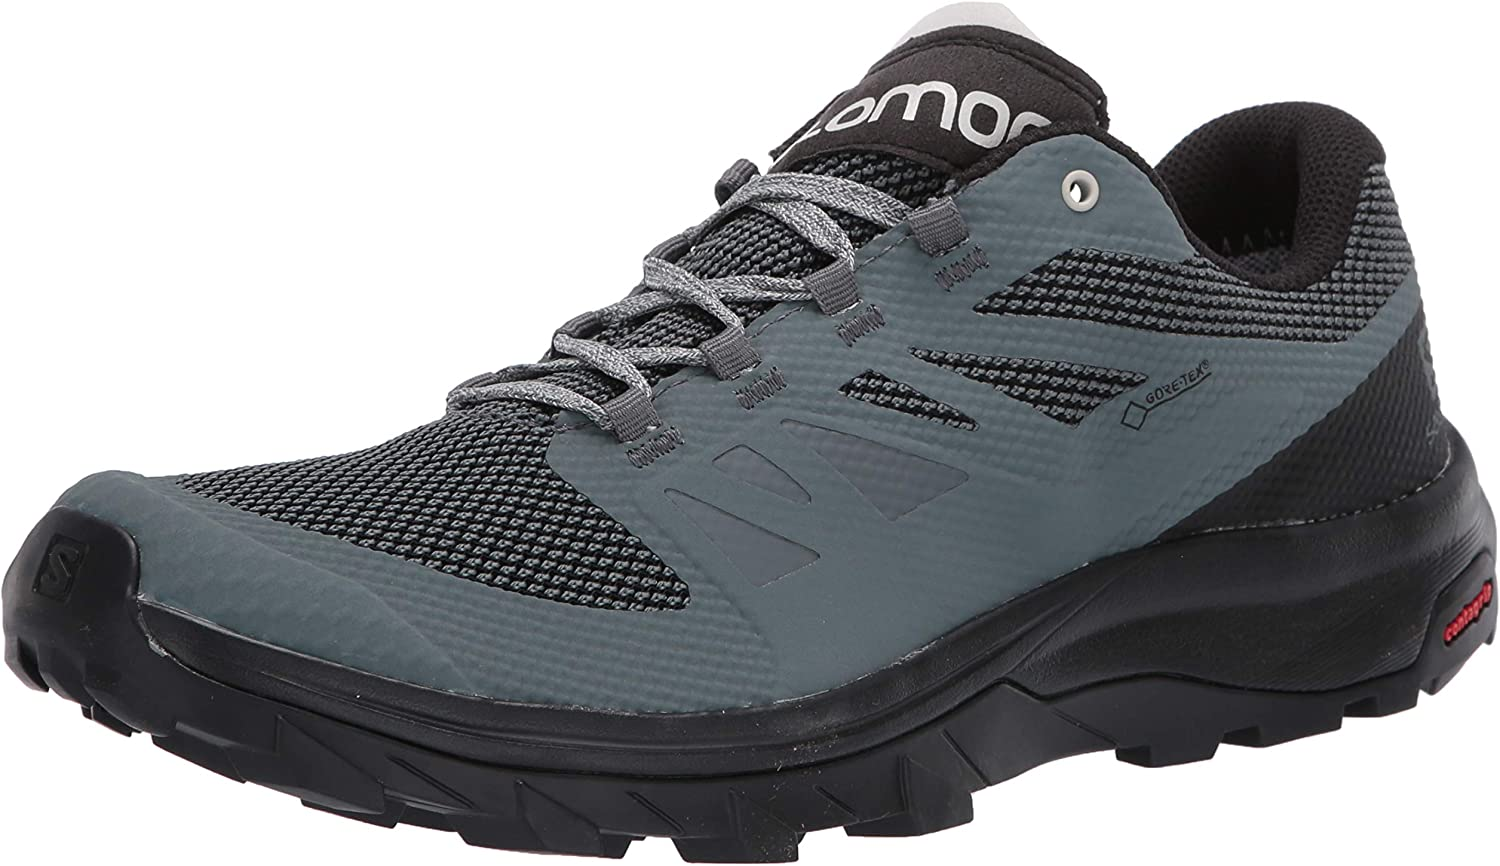 salomon outline gtx hiking shoes - men's de